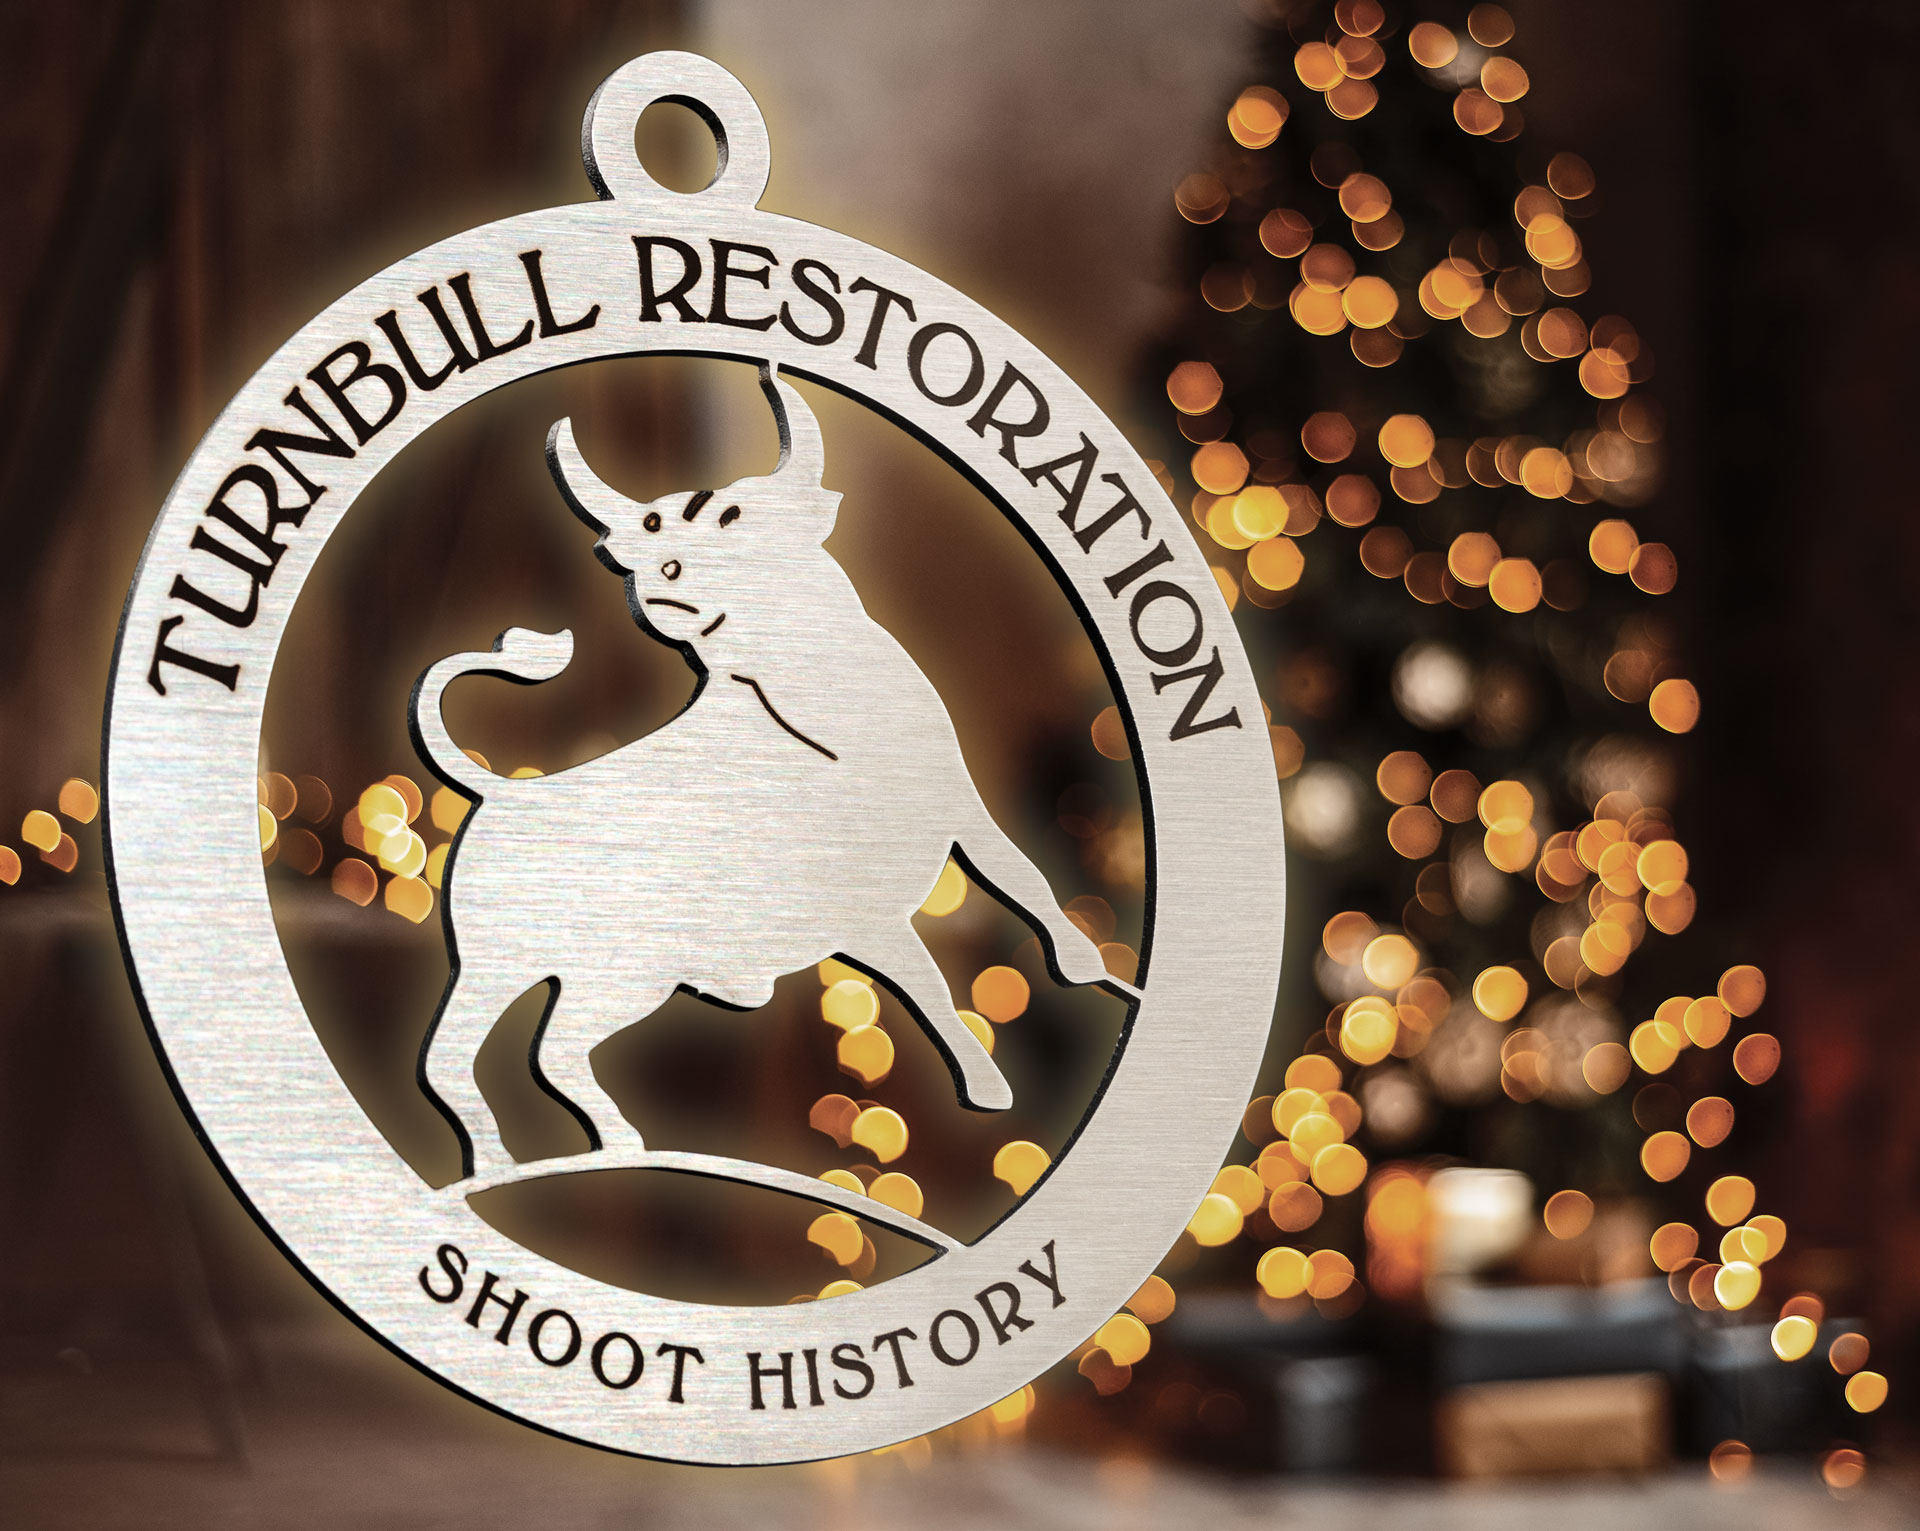 Photo of the Turnbull Restoration Shoot History ornament